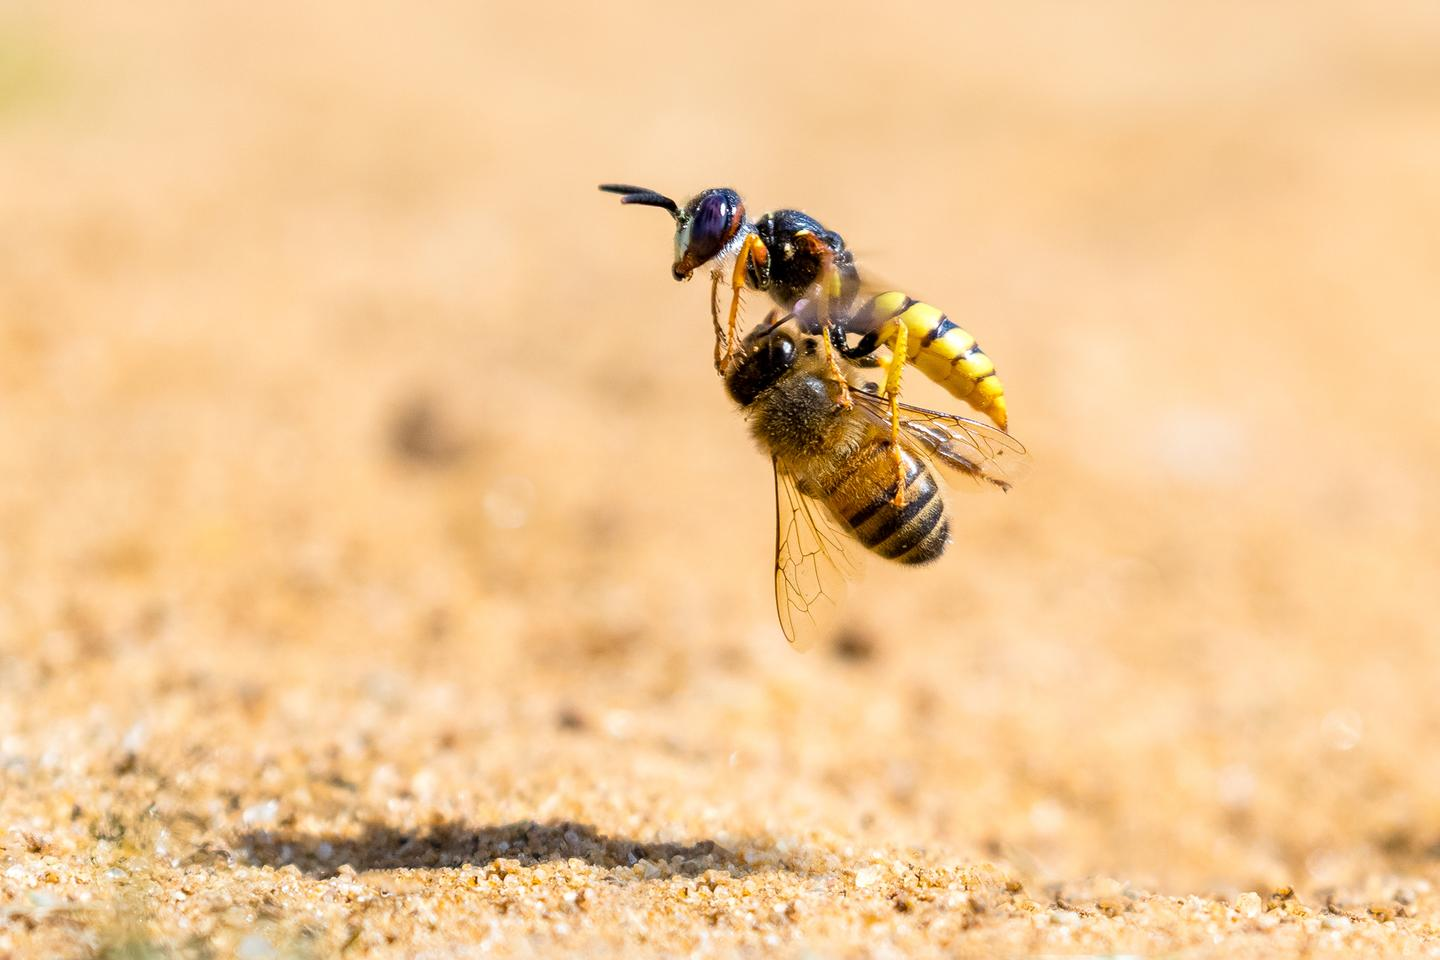 A wasp carries away its prey, a poor unsuspecting honeybee